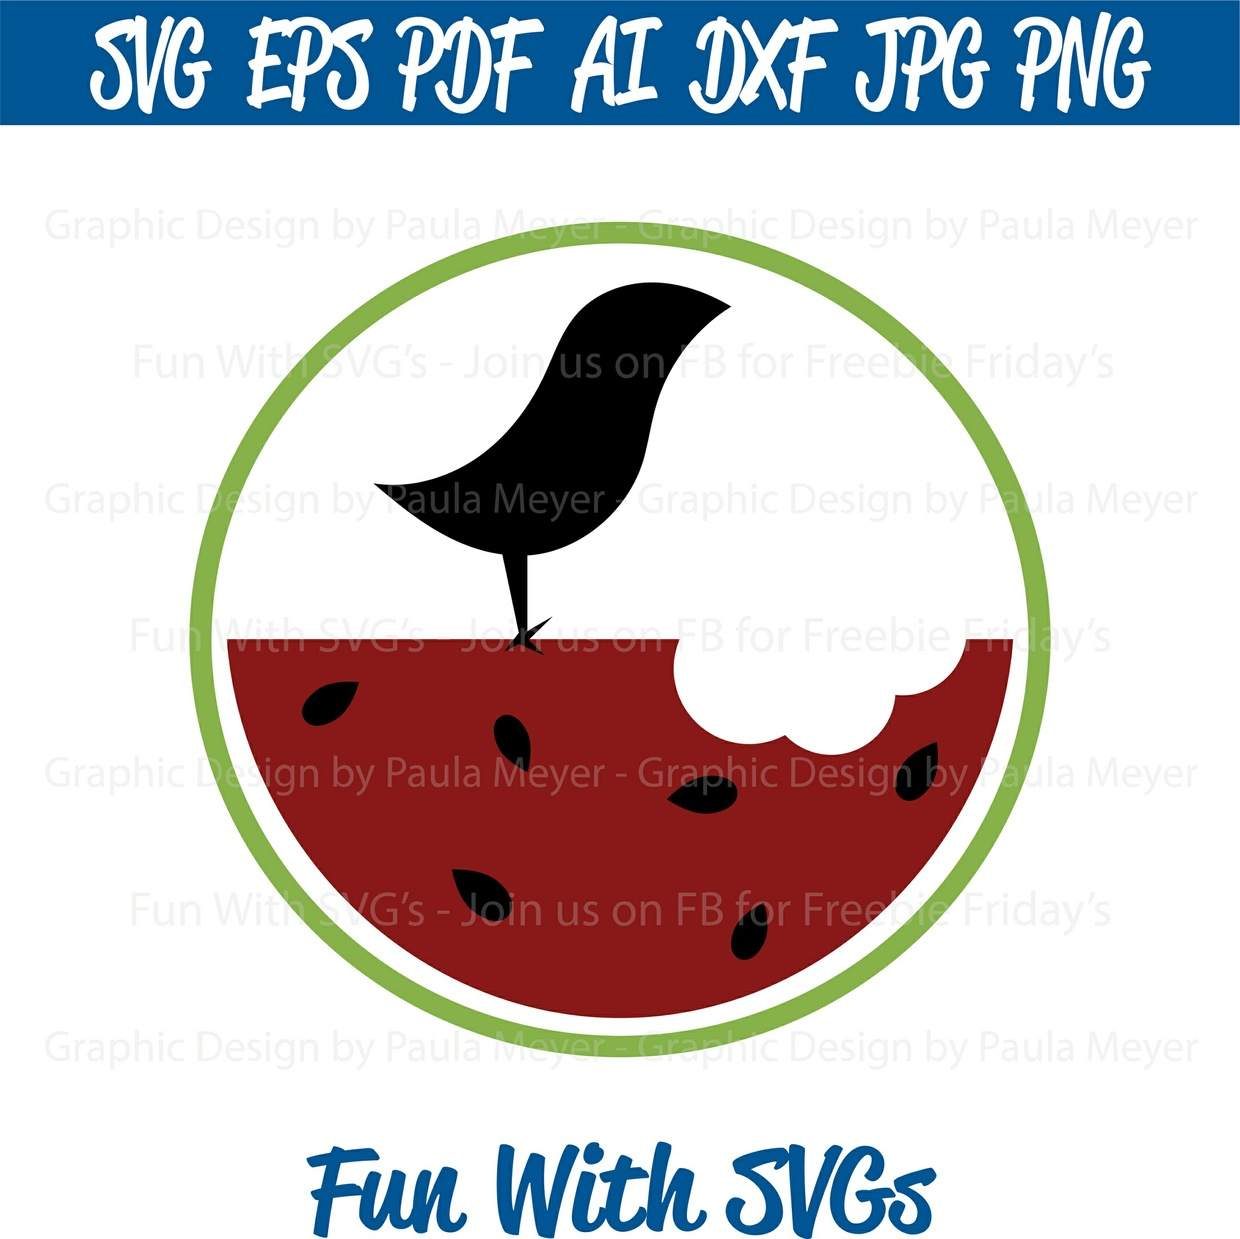 Watermelon Bird -  SVG Cut File, High Resolution Printable Graphics and Editable Vector Art